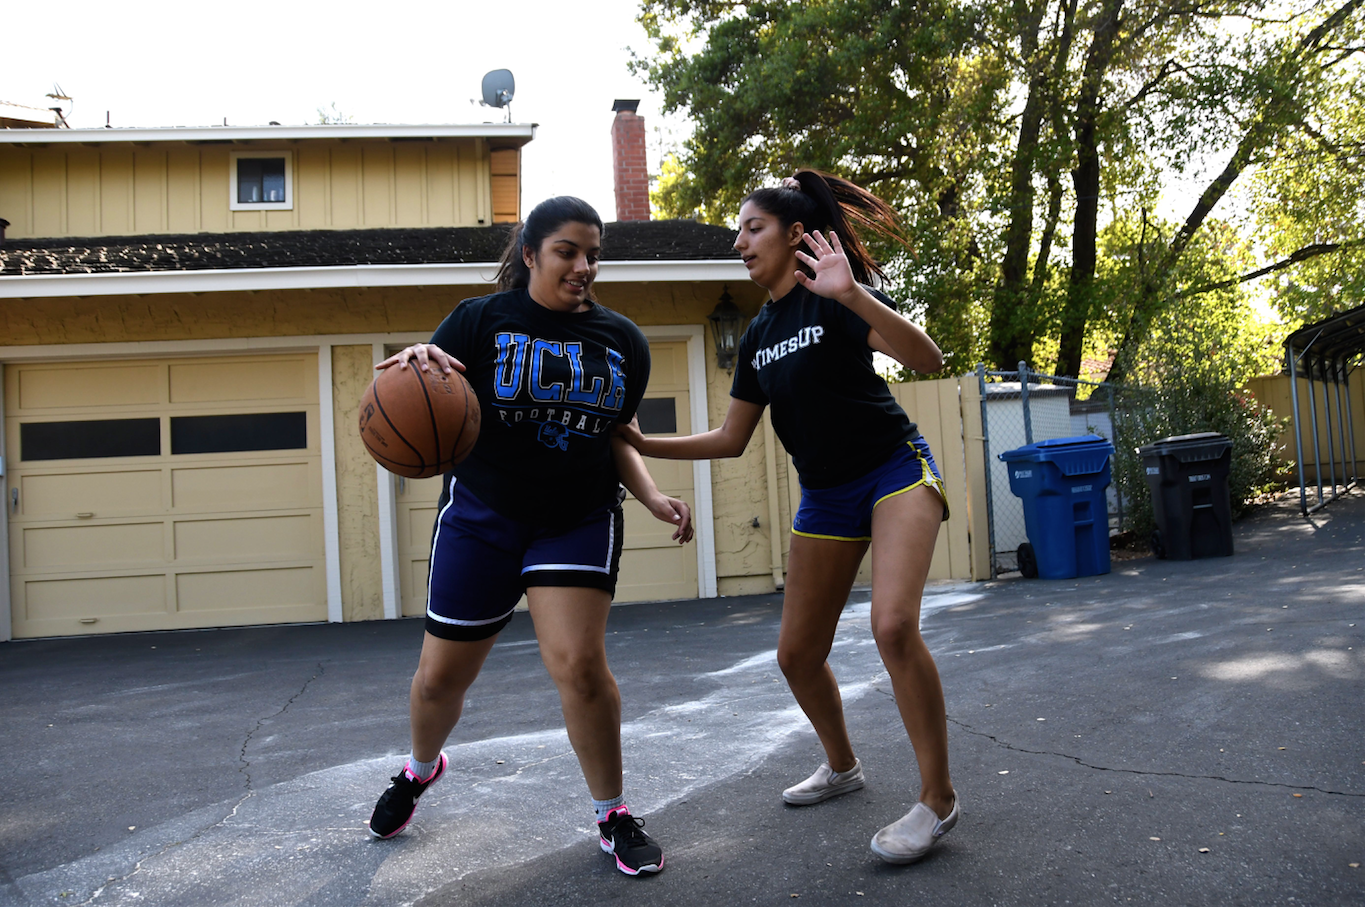 Senior twins Priyanka and Rupali Sujan play one on one in their front yard. They play regularly both for fun and to help each other improve particular skills.